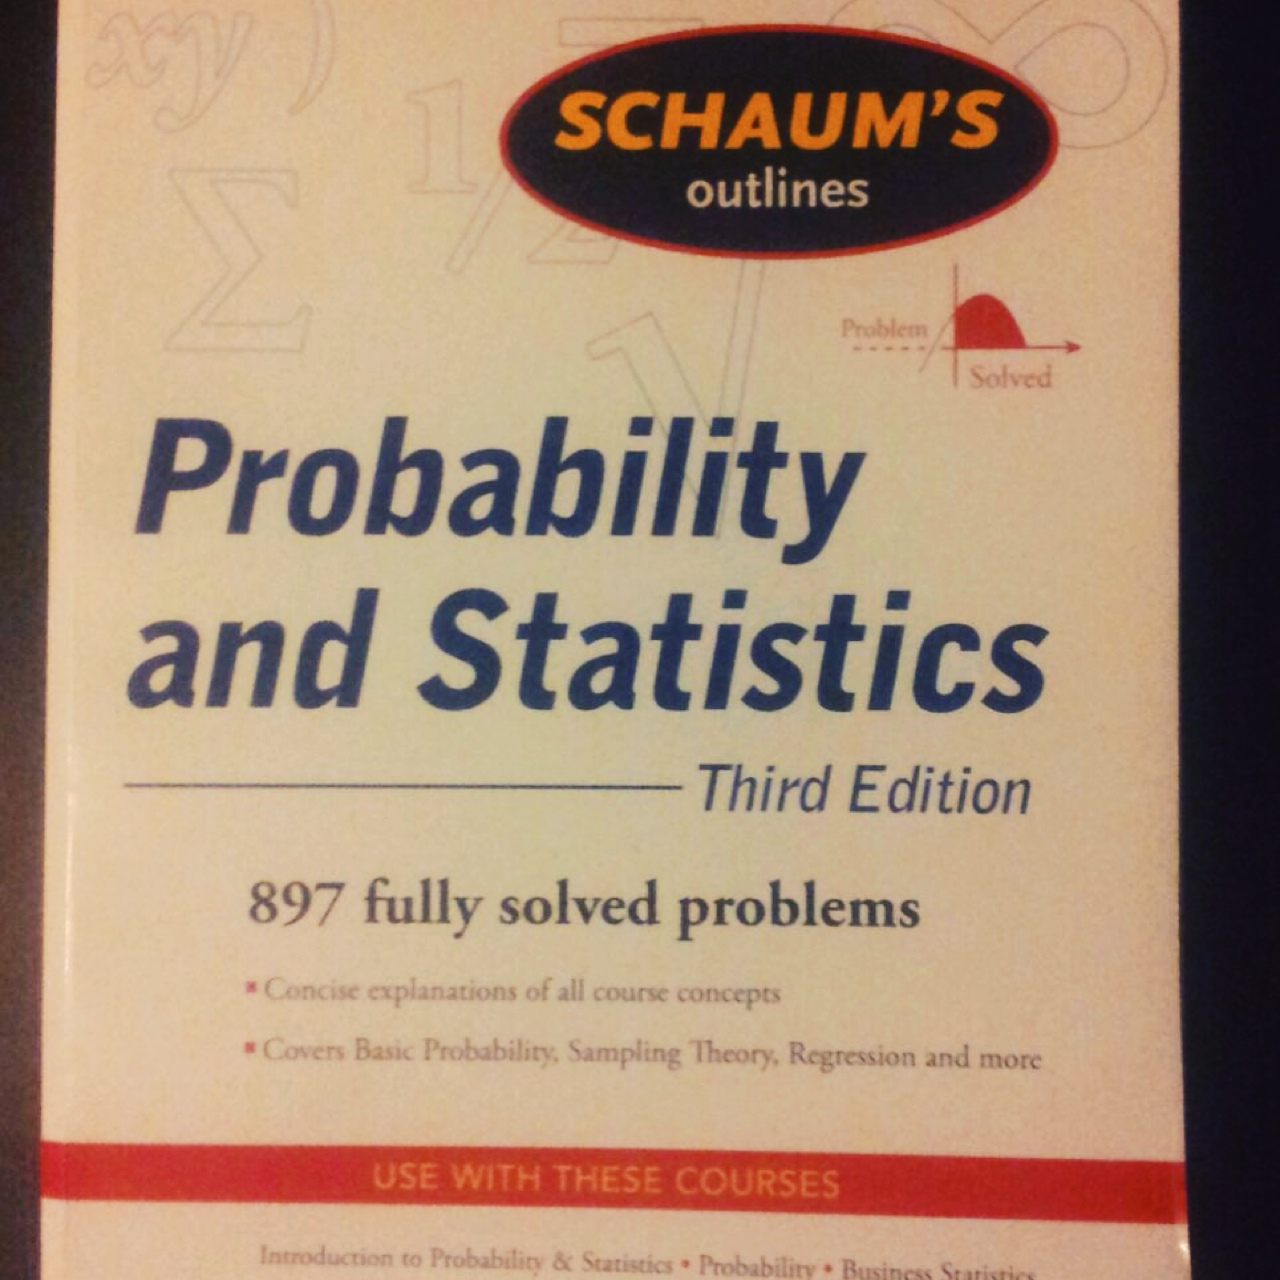 Free shipping! Excellent condition math books     - Depop